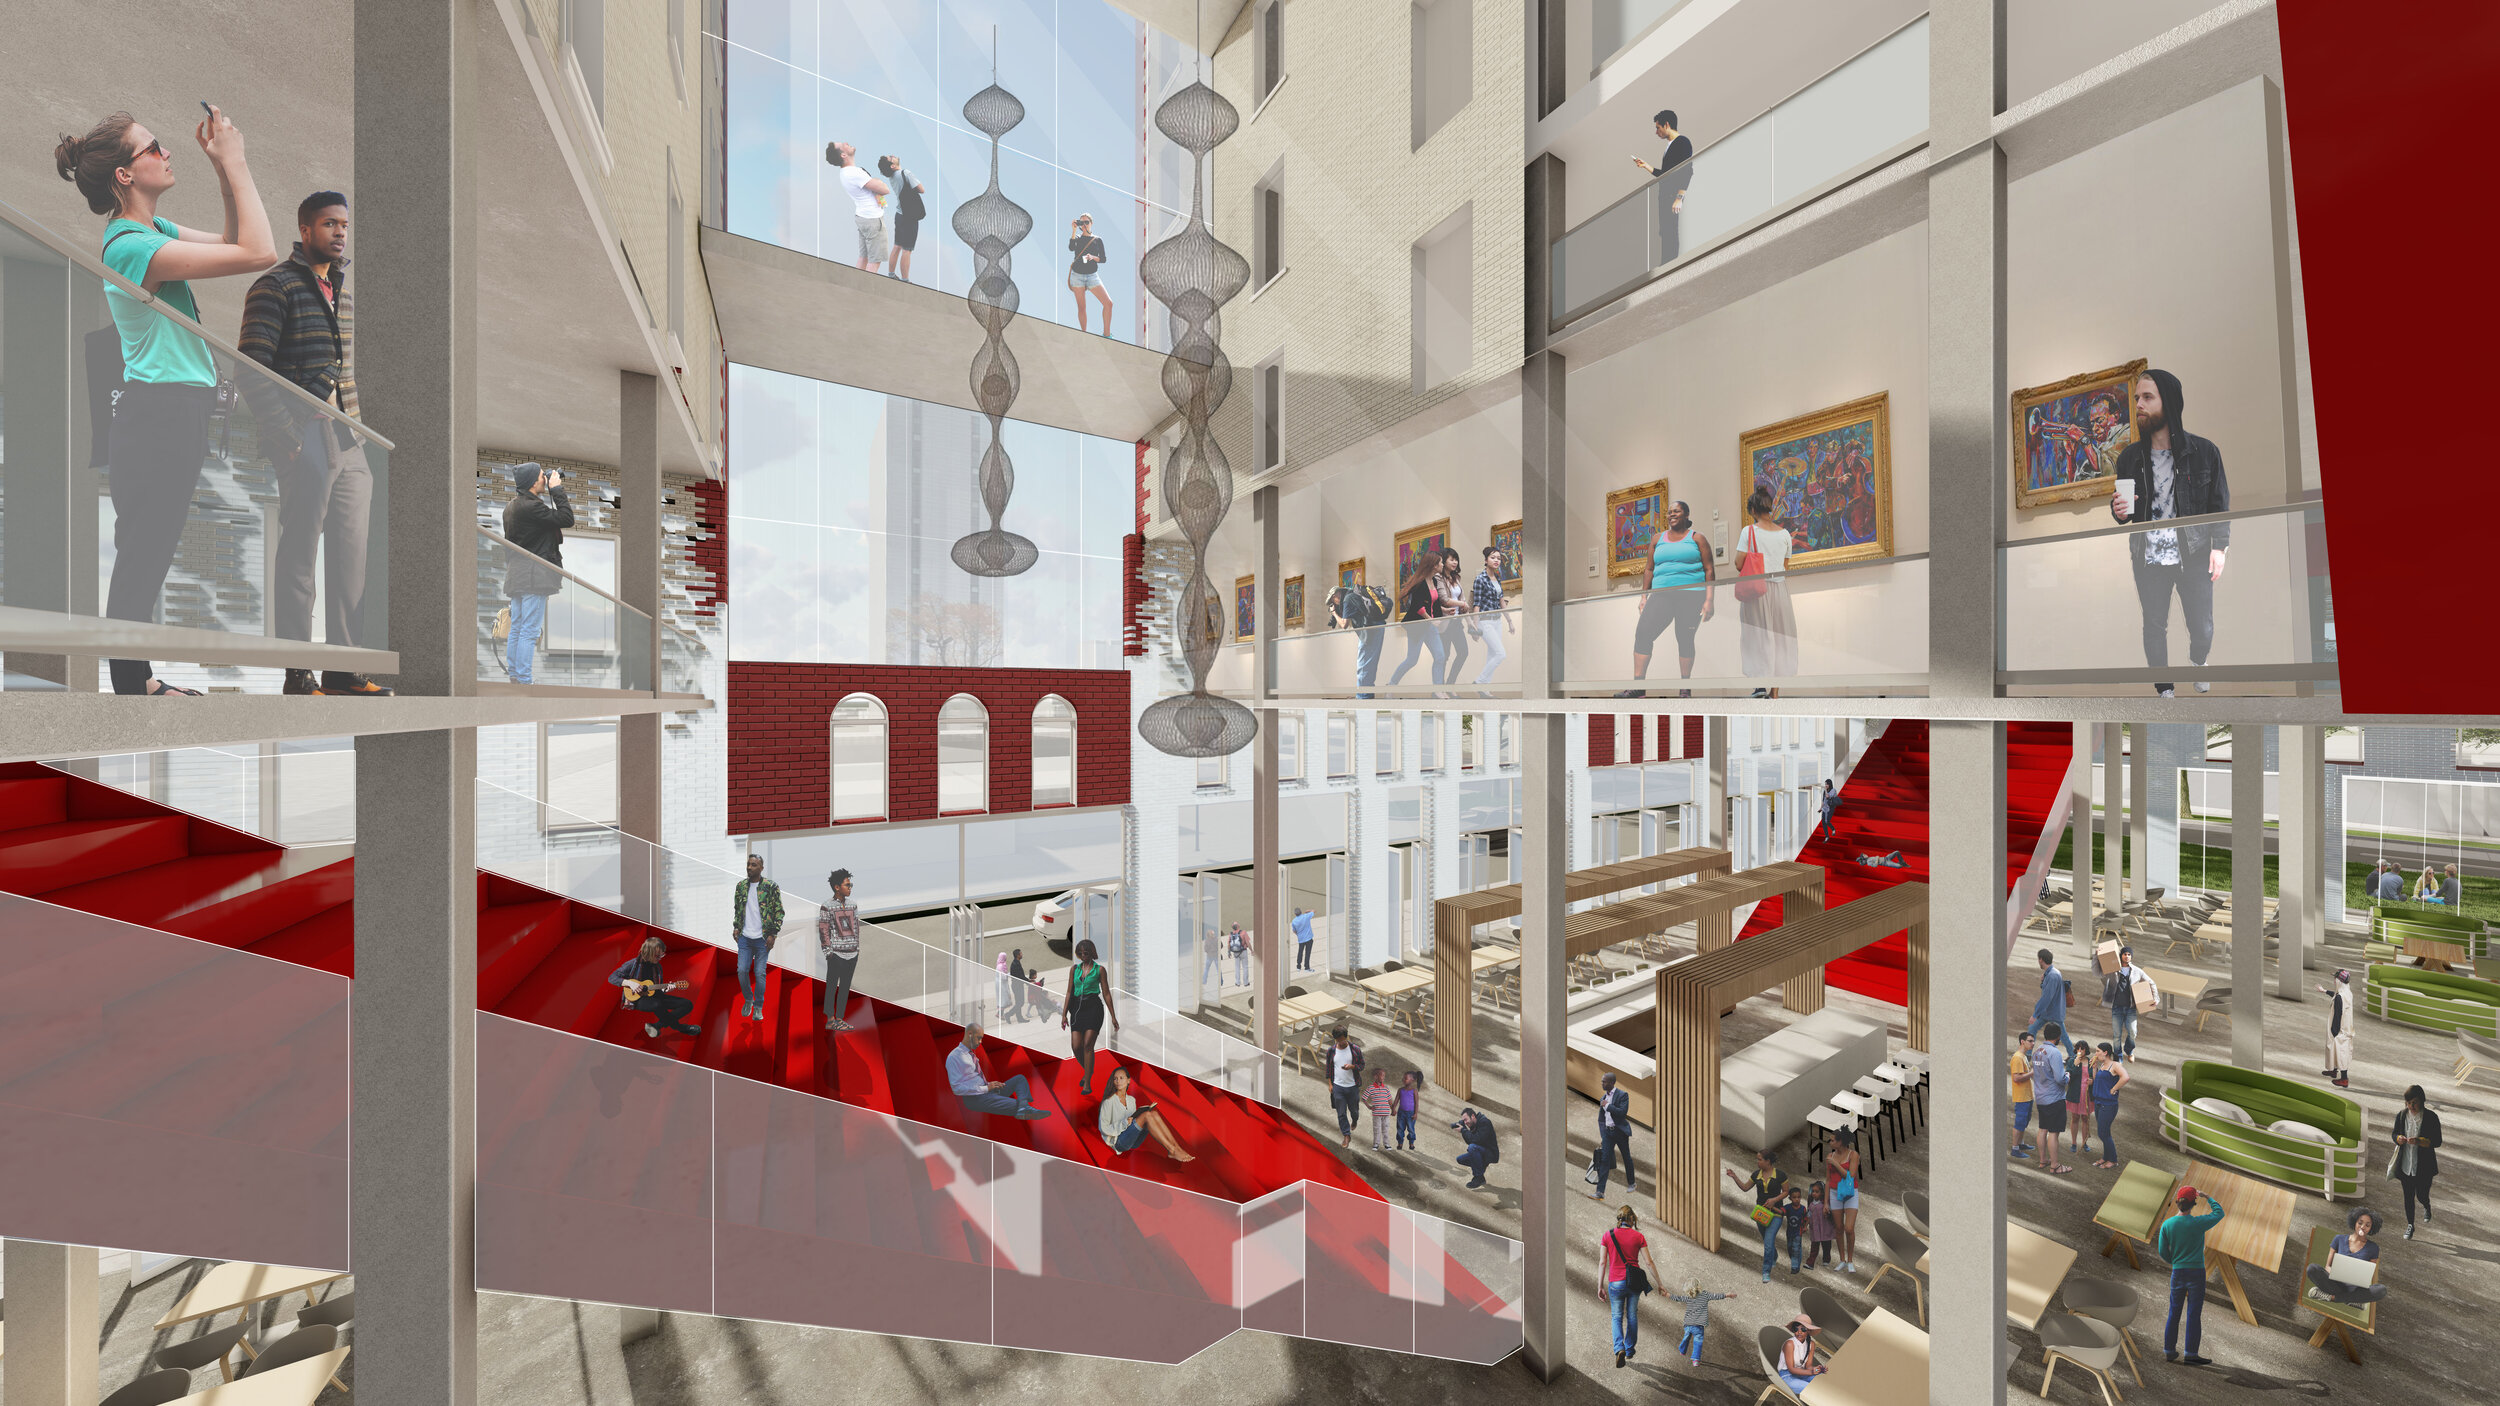 Interior rendering showing lighting of common first floor space, as well as transparency from exterior to interior, and also within the interior spaces as well